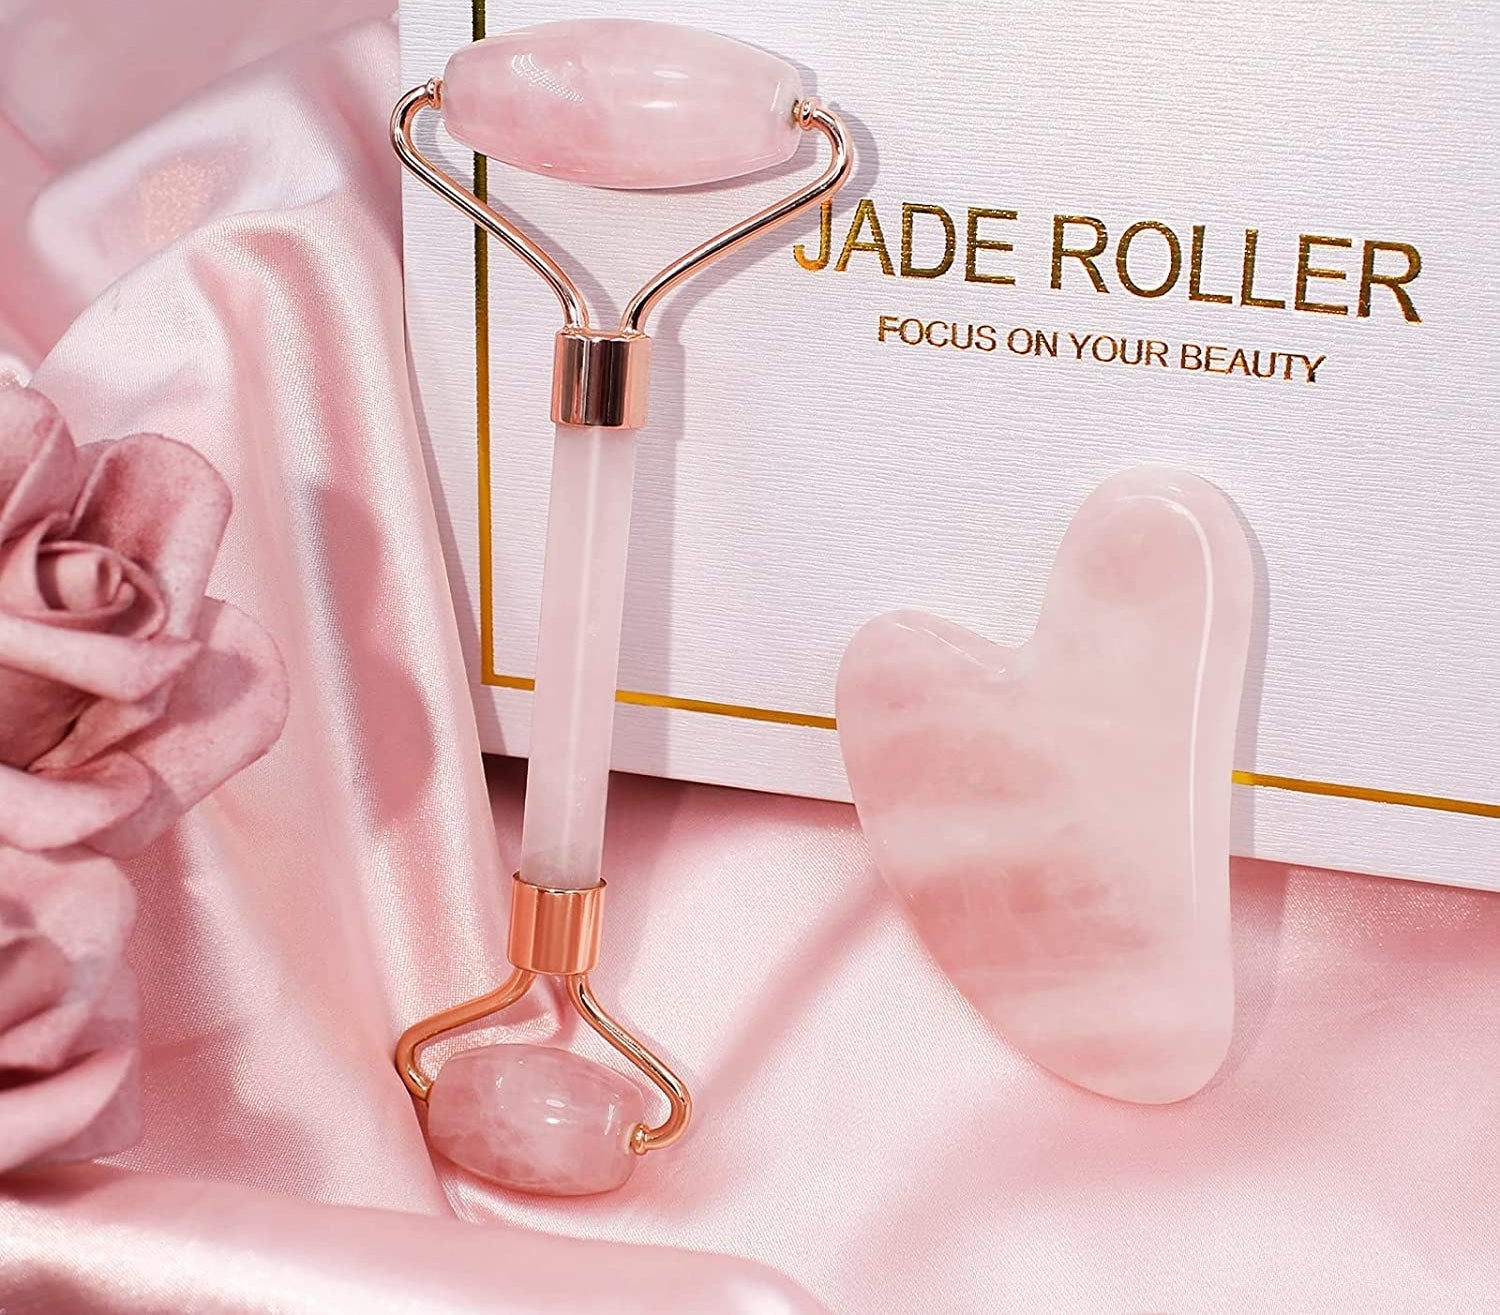 the double-sided roller next to a gua sha scraping tool